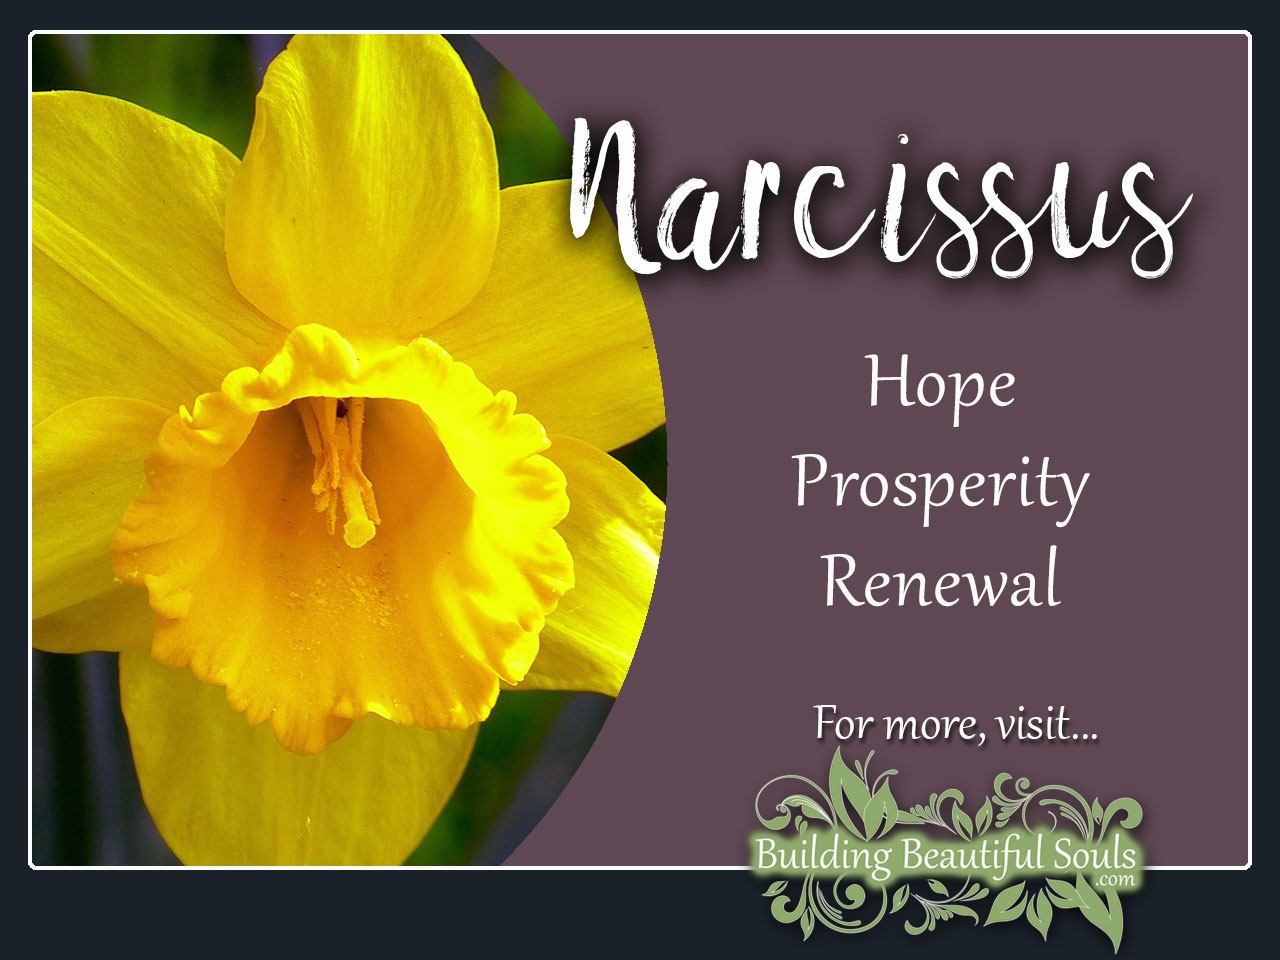 narcissus meaning symbolism flower meanings narcissus meaning symbolism flower meanings 1280x960